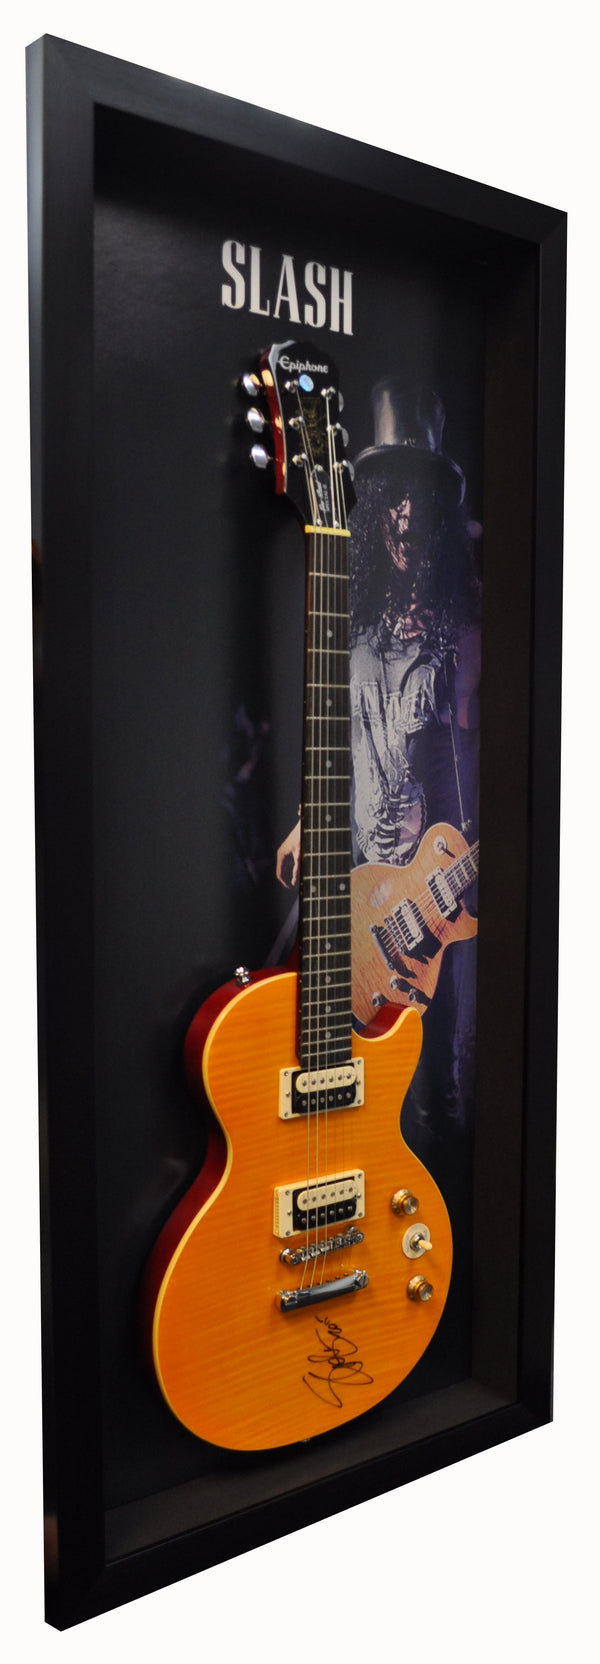 SLASH GUNS N' ROSES SIGNED GUITAR EPIPHONE AUTOGRAPHED LES PAUL SHADOW BOX FRAME